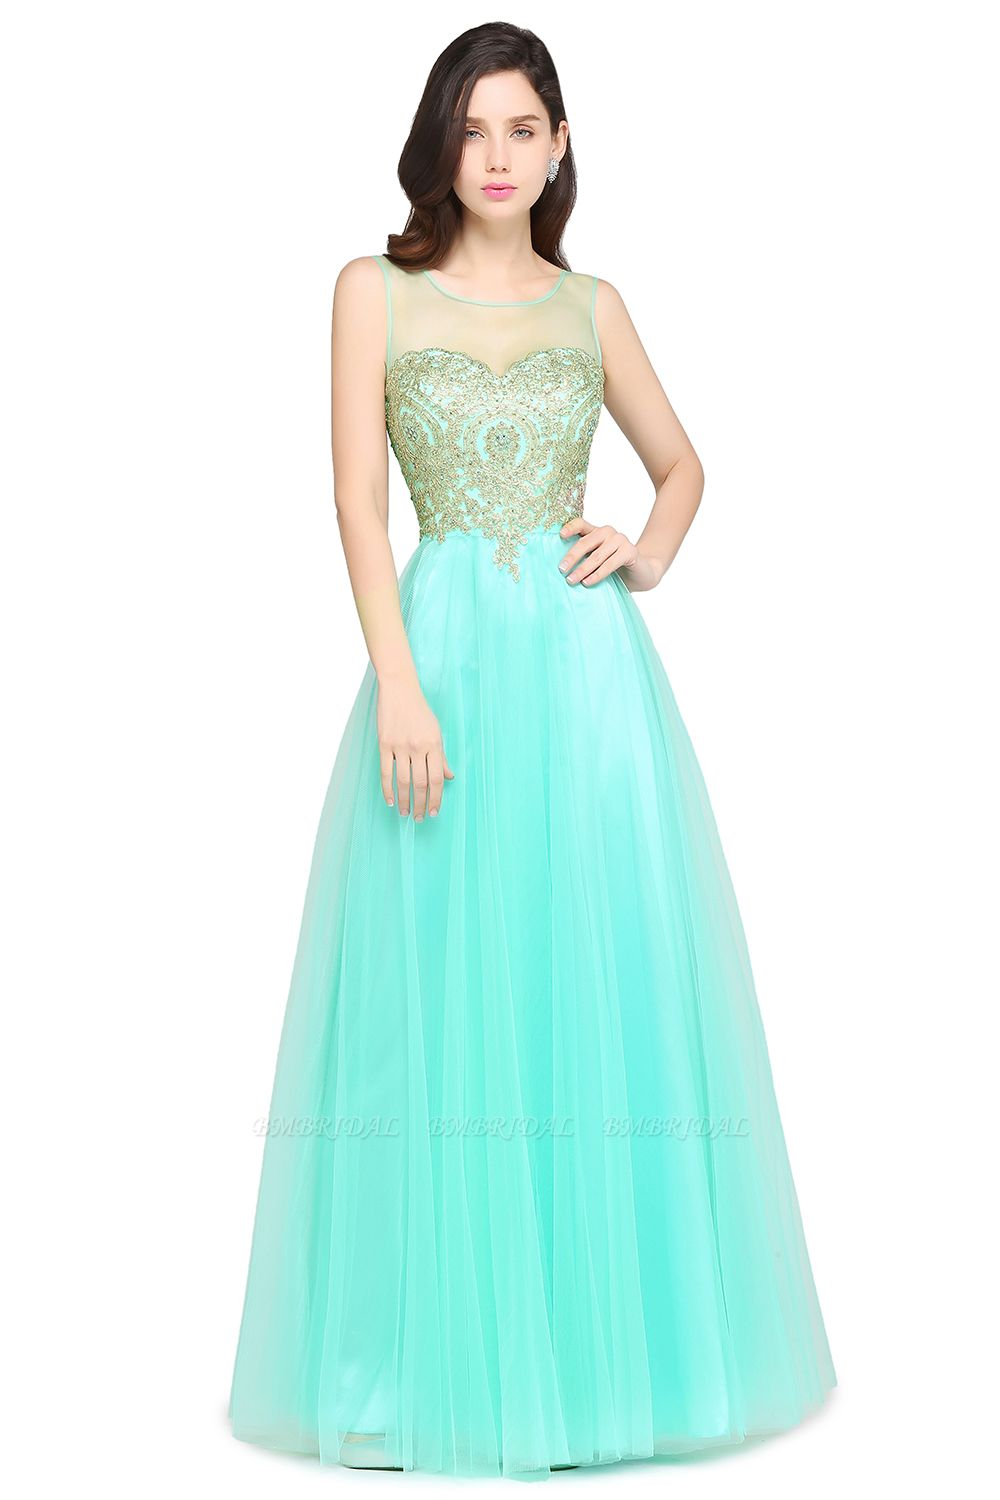 BMbridal Gorgeous Illussion Scoop Long Prom Dress With Lace Appliques